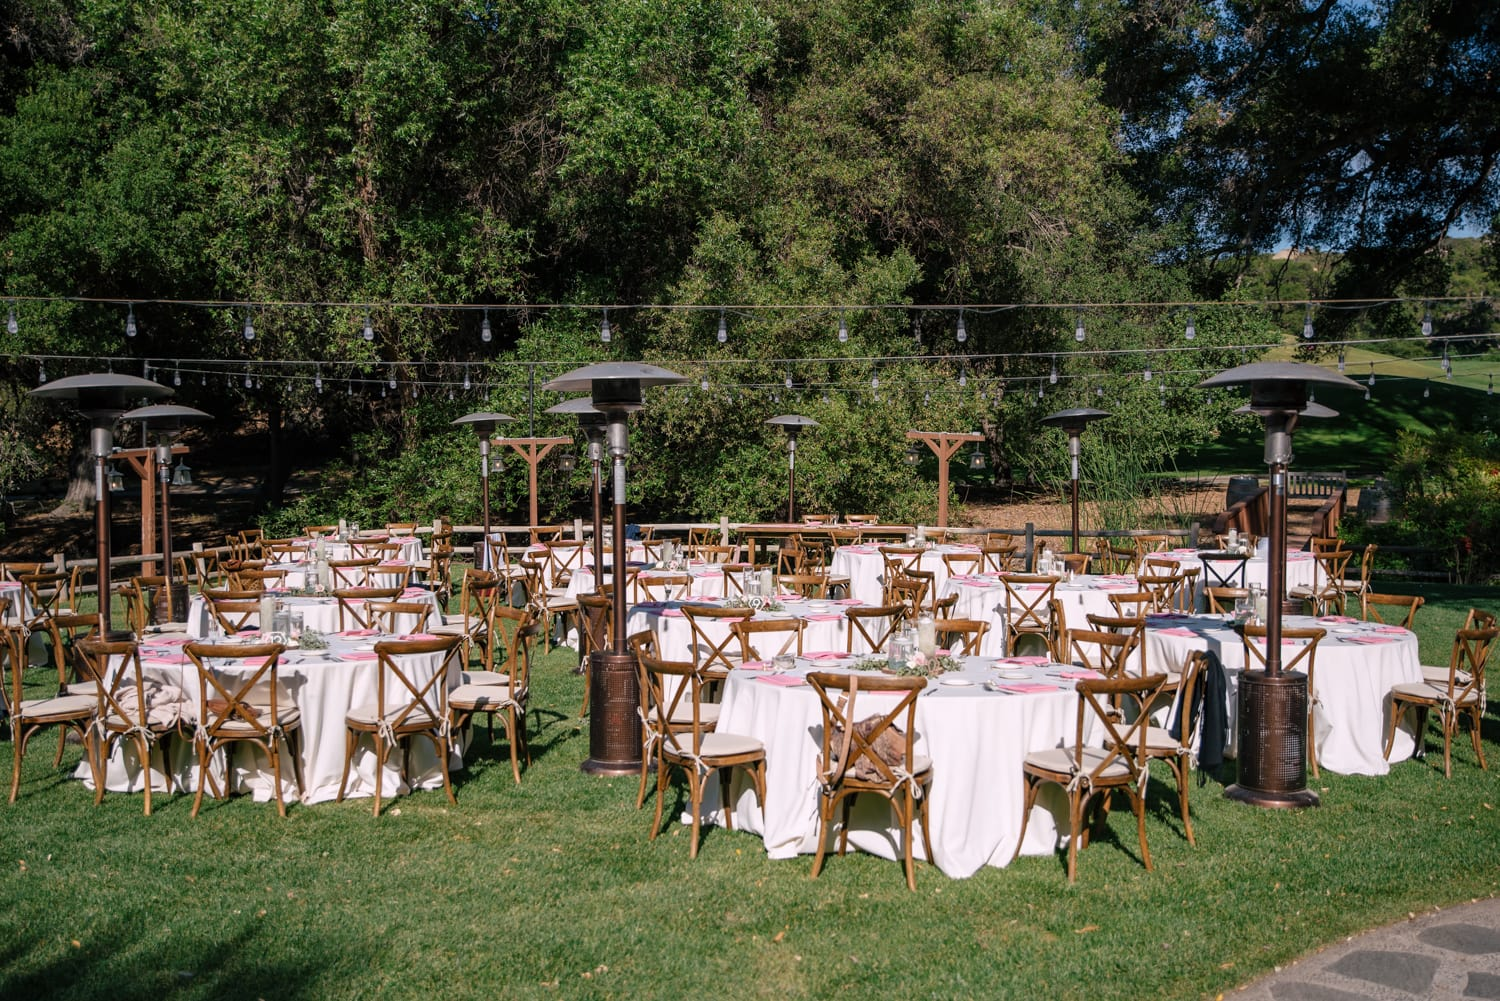 Dining tables at Stone House wedding reception in Temecula, CA.